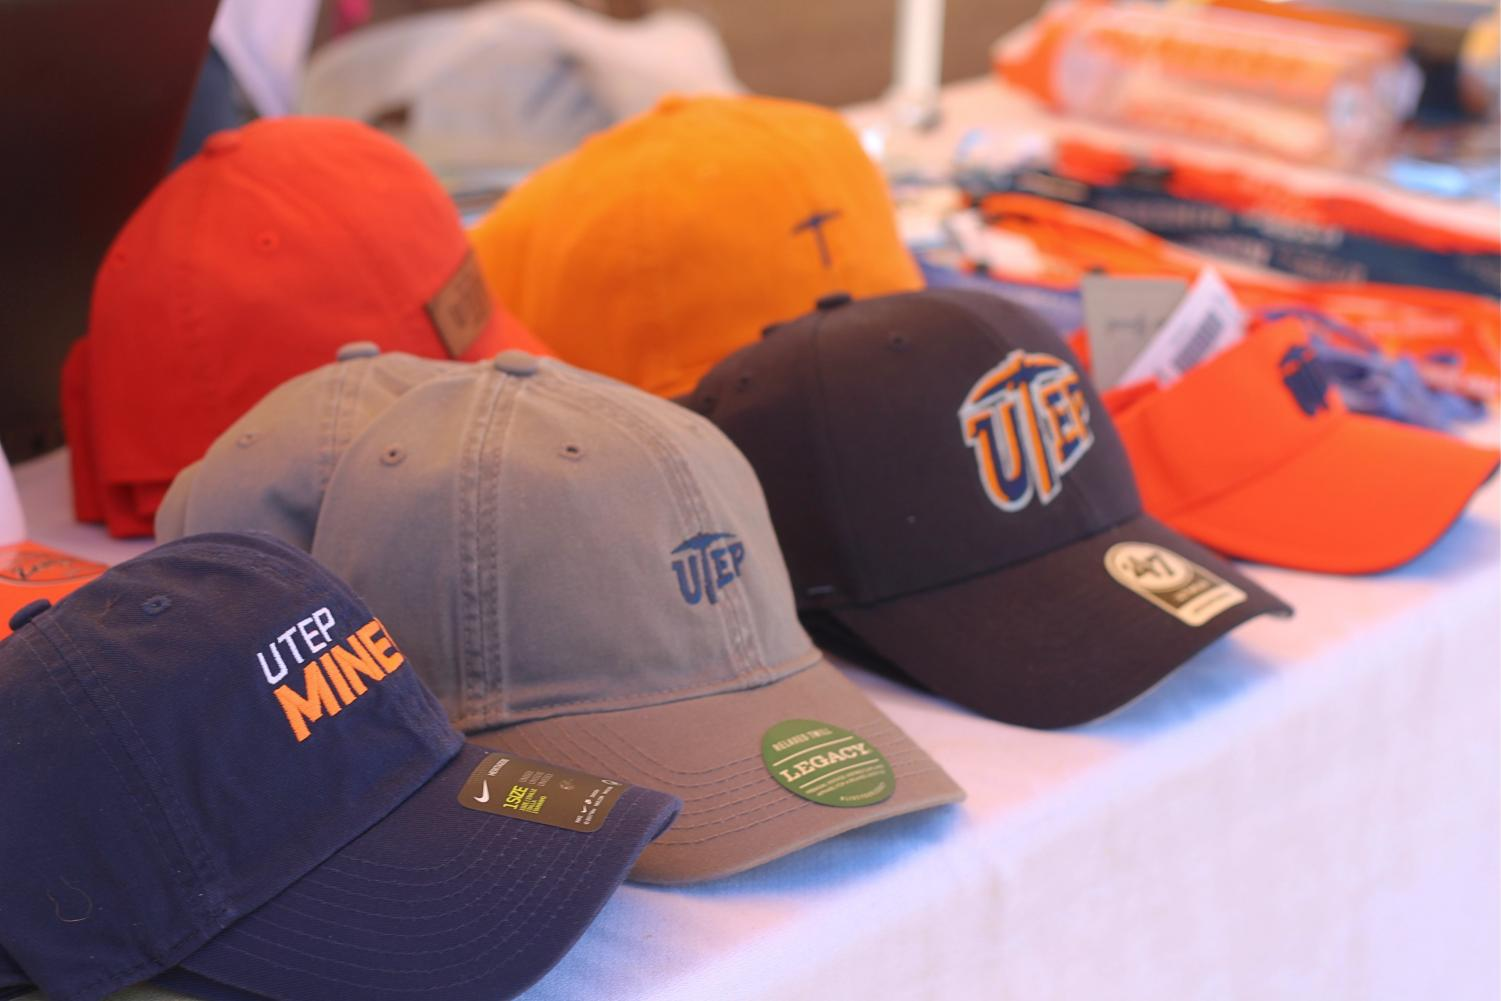 Shirts+and+hats+sale+at+the+celebration+of+UTEP%27s%C2%A0+Student+Government+Association+%28SGA%29+100+years+of+service+at+Centennial+Plaza.